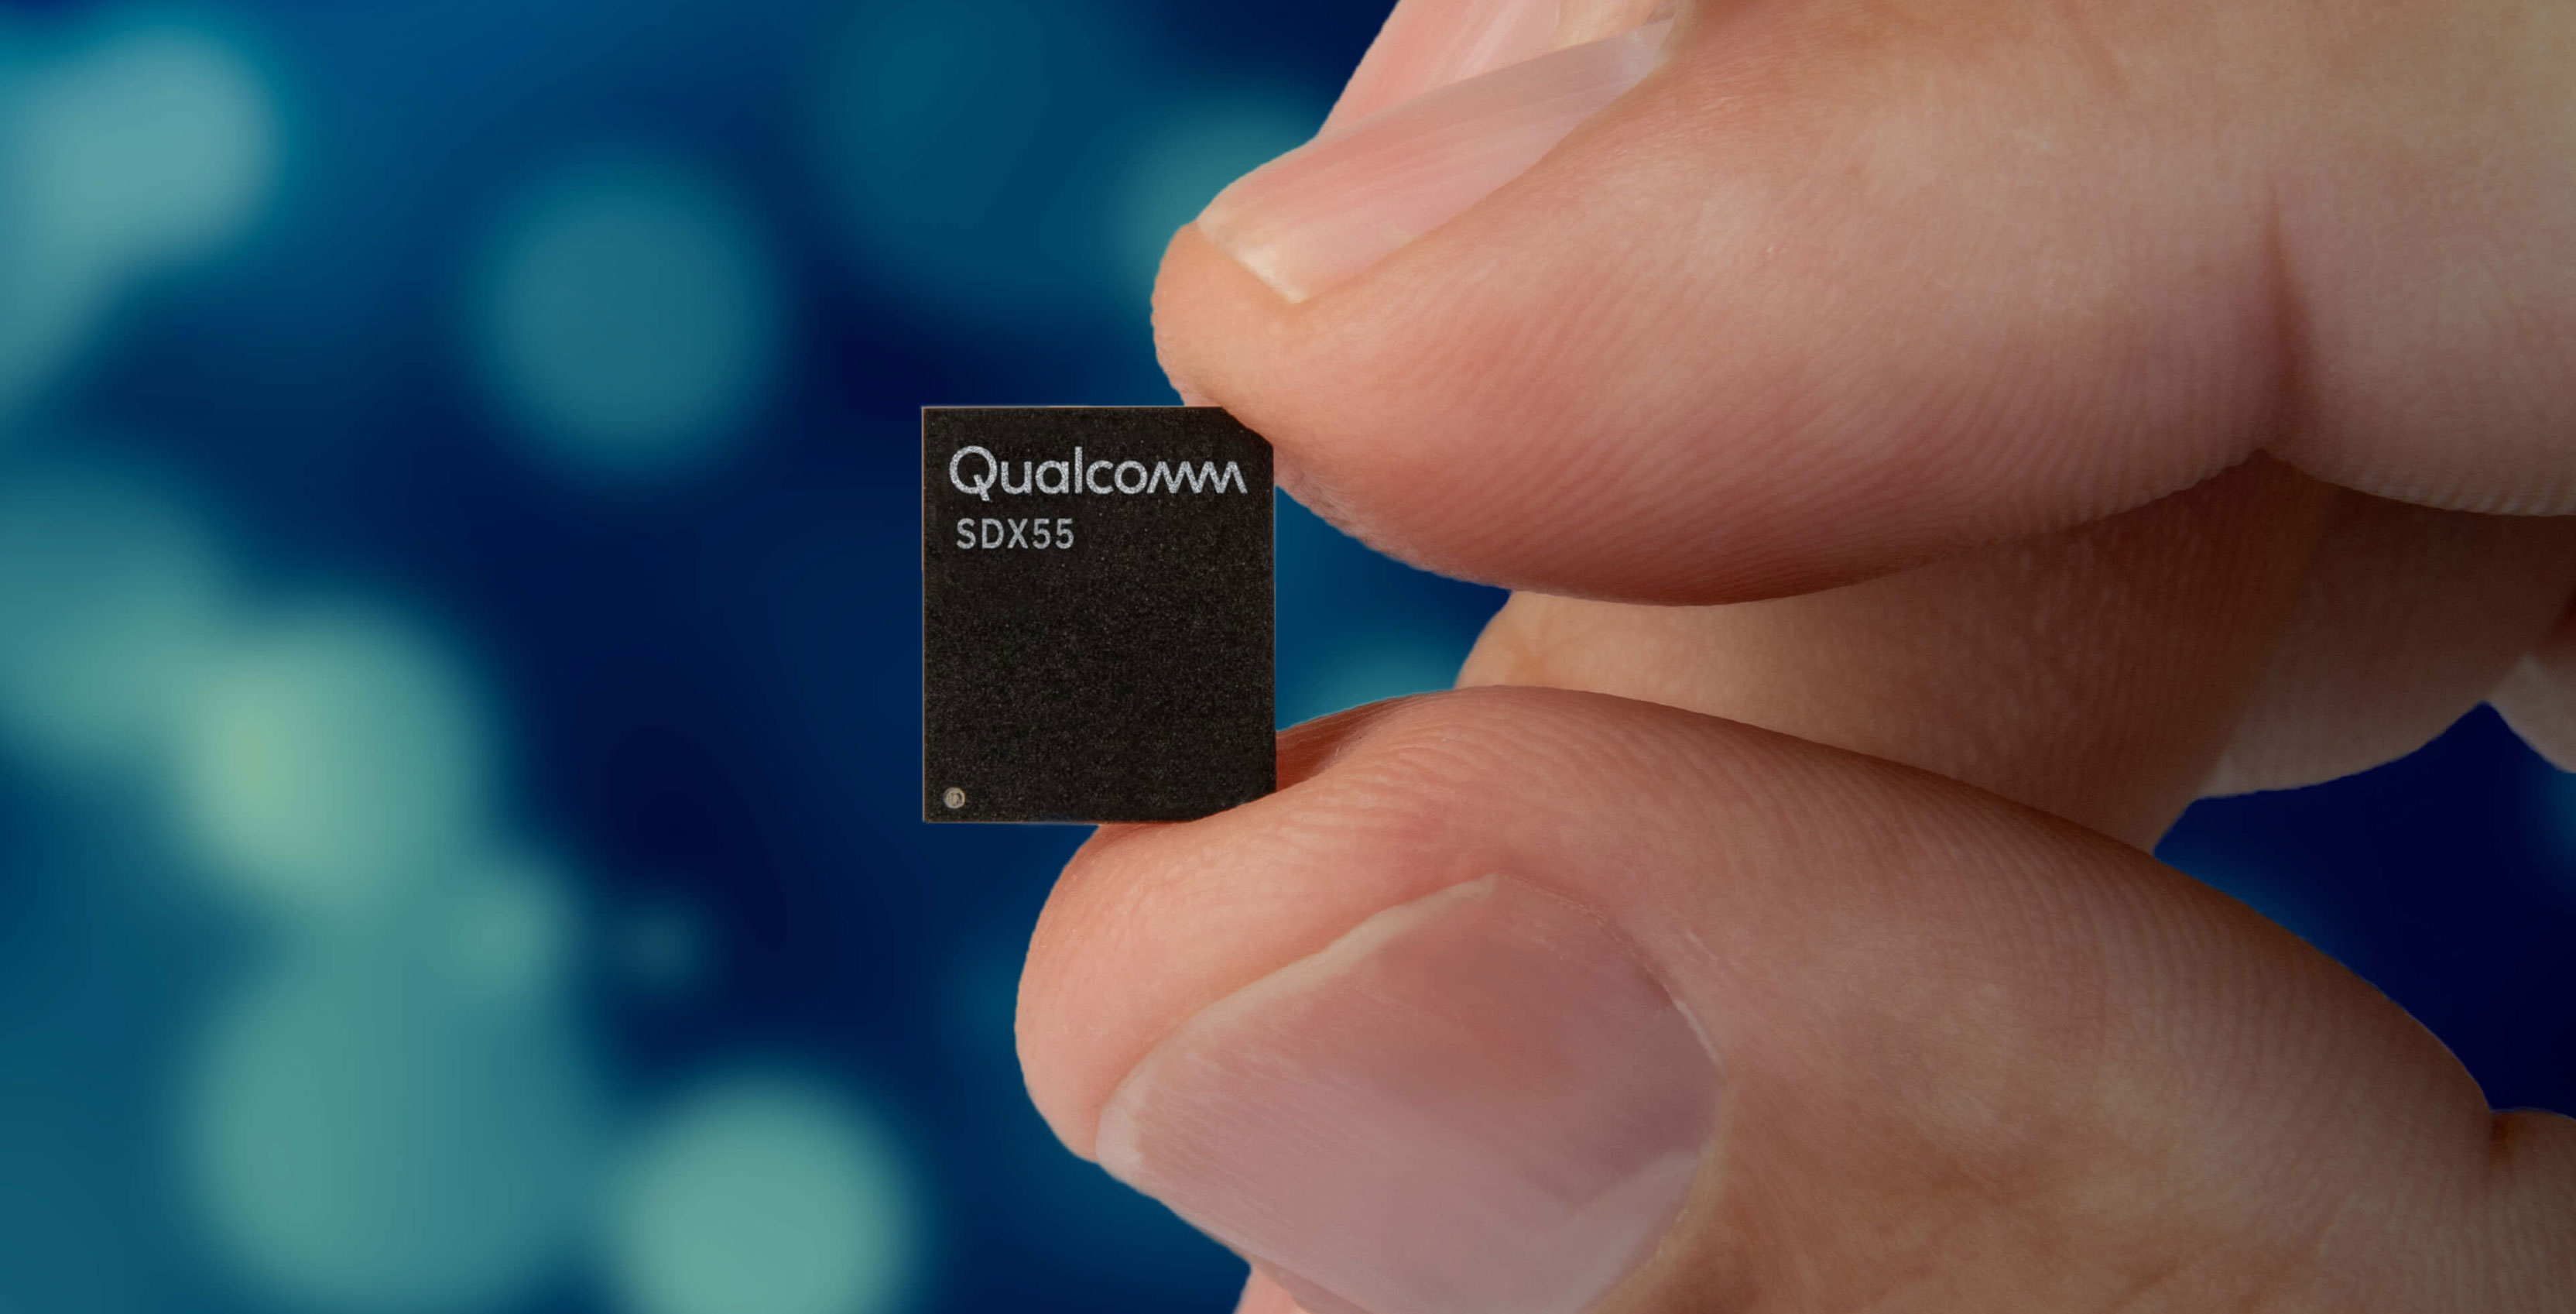 Qualcomm's new X55 modem